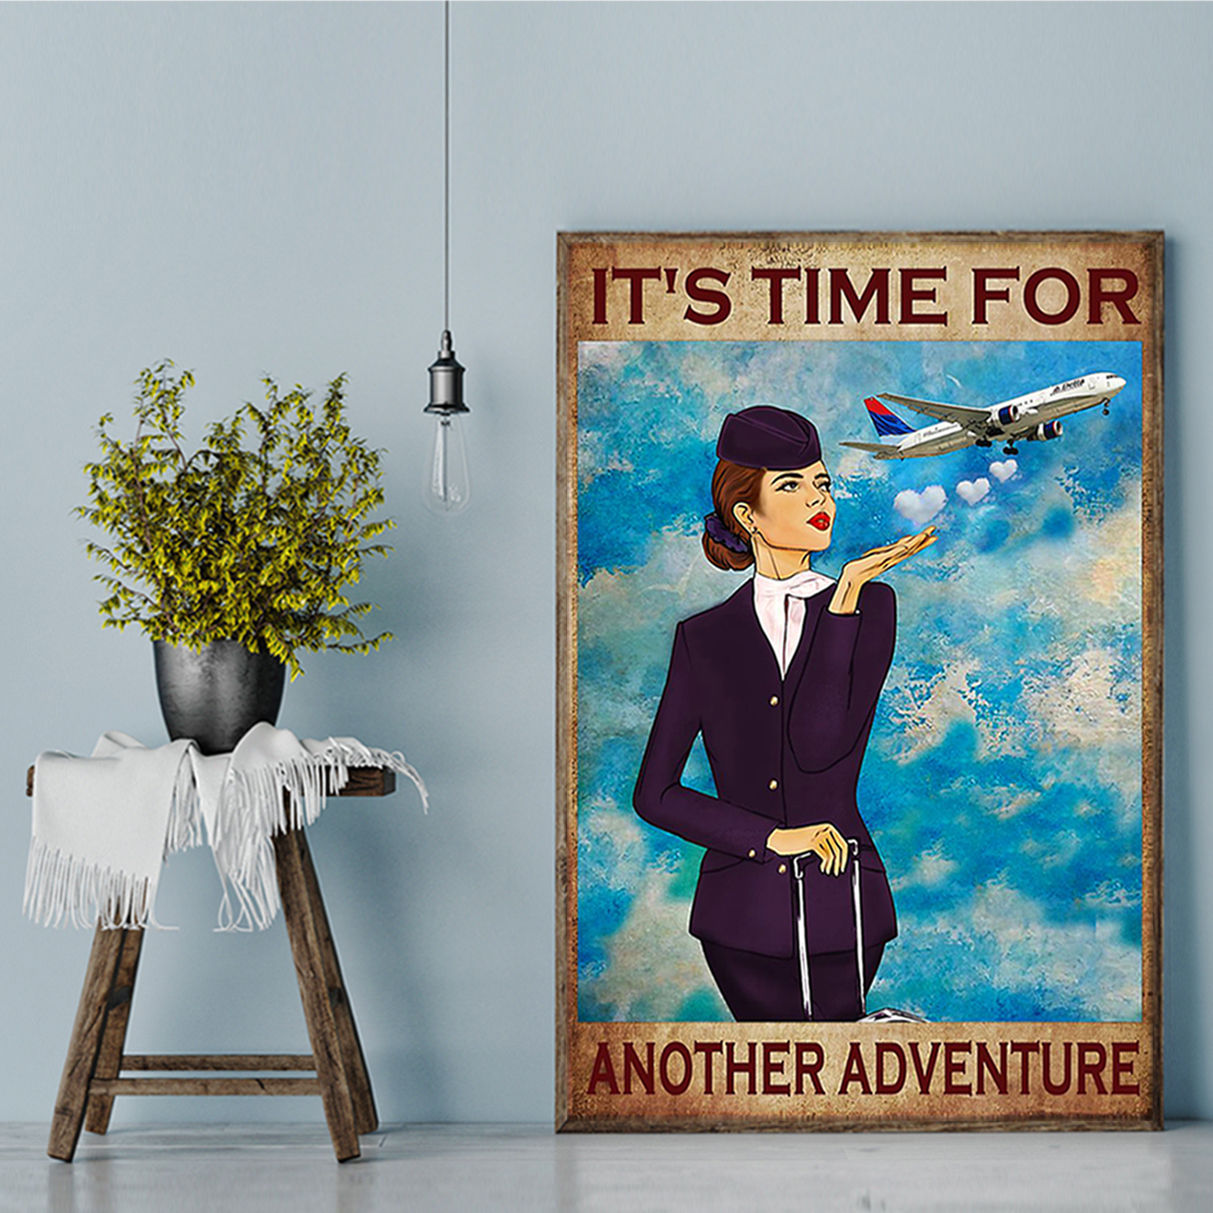 Flight attendant it's time for another adventure poster A1